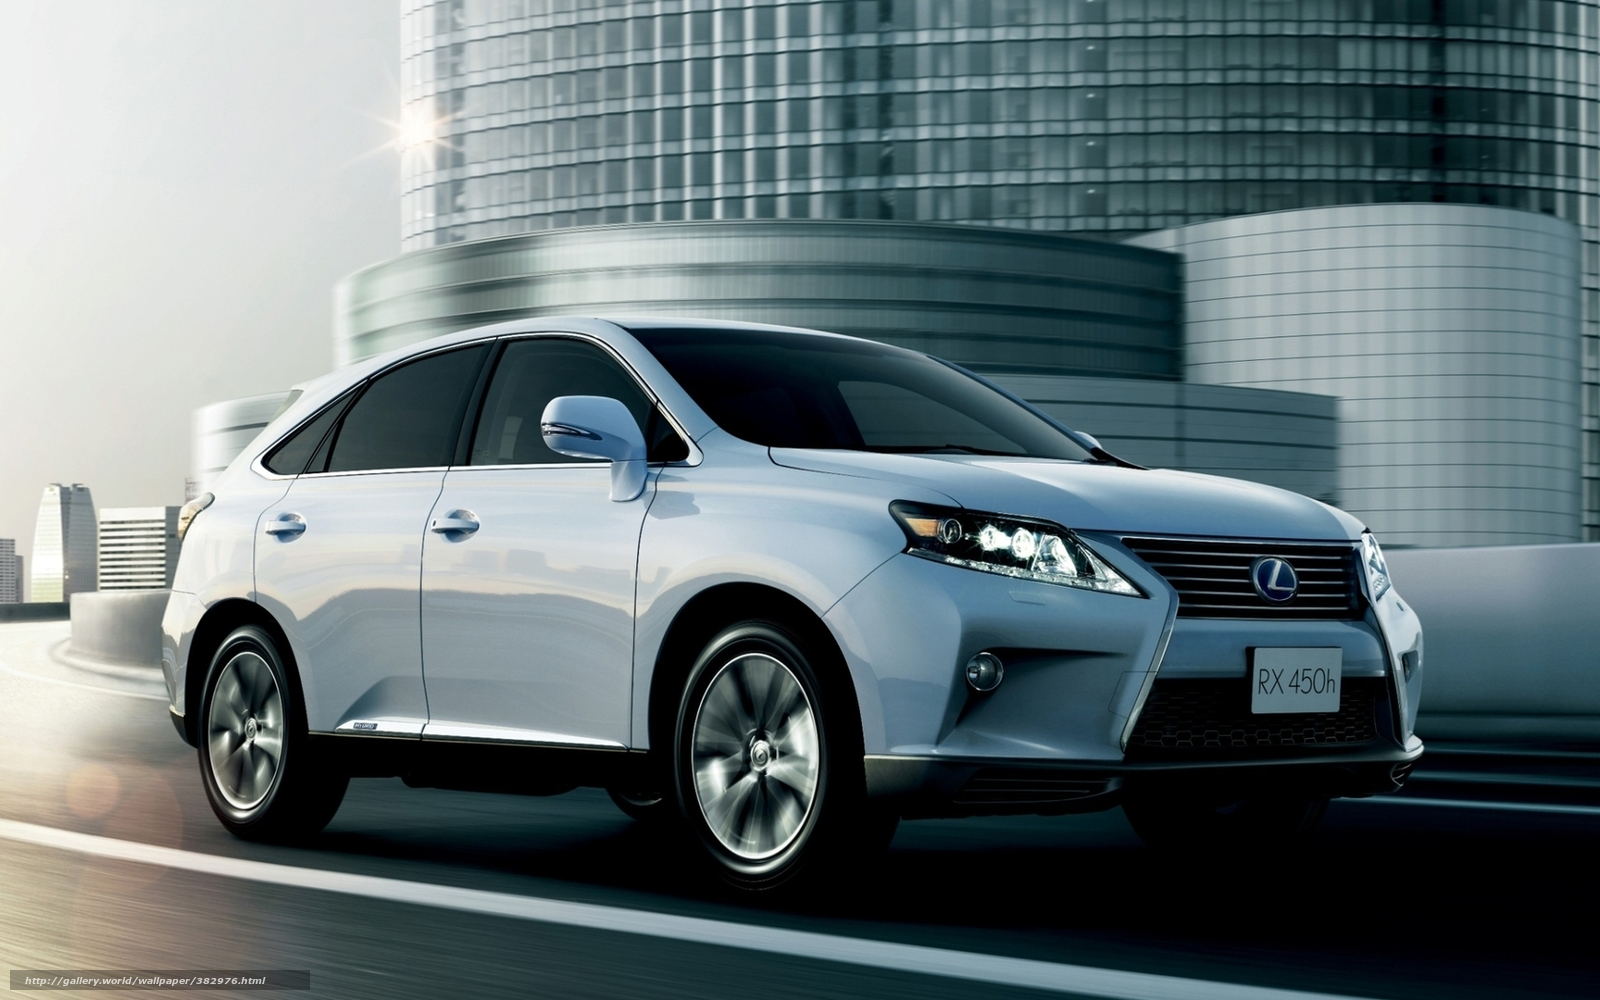 Download wallpaper lexus crossover jeep hybrid free desktop wallpaper in the resolution 1680x1050 picture 382976